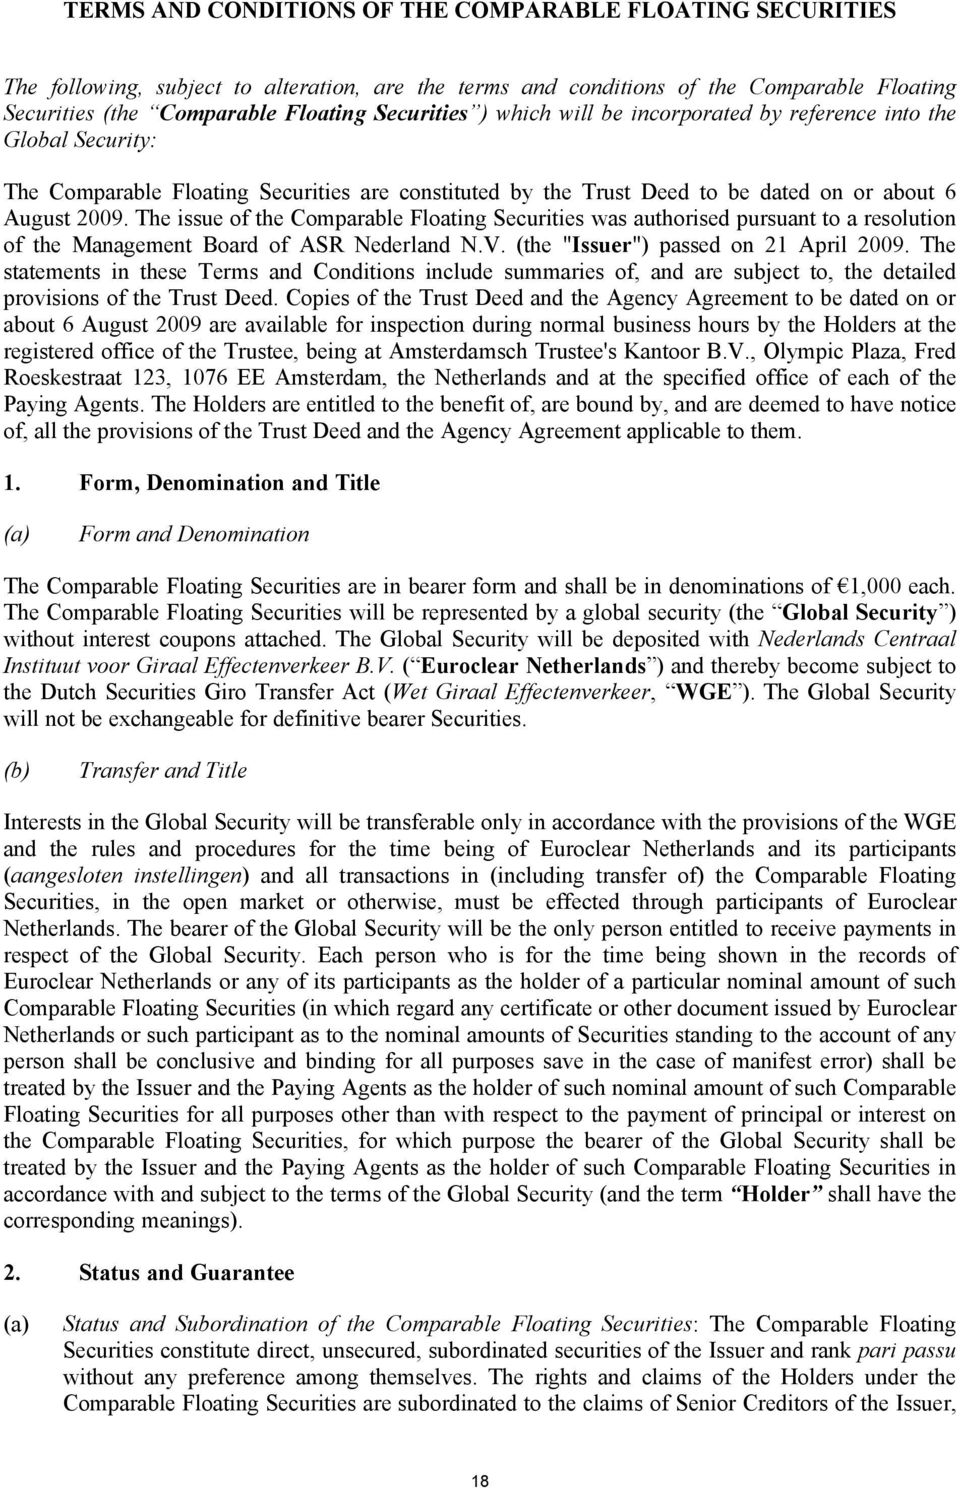 "The issue of the Comparable Floating Securities was authorised pursuant to a resolution of the Management Board of ASR Nederland N.V. (the ""Issuer"") passed on 21 April 2009."